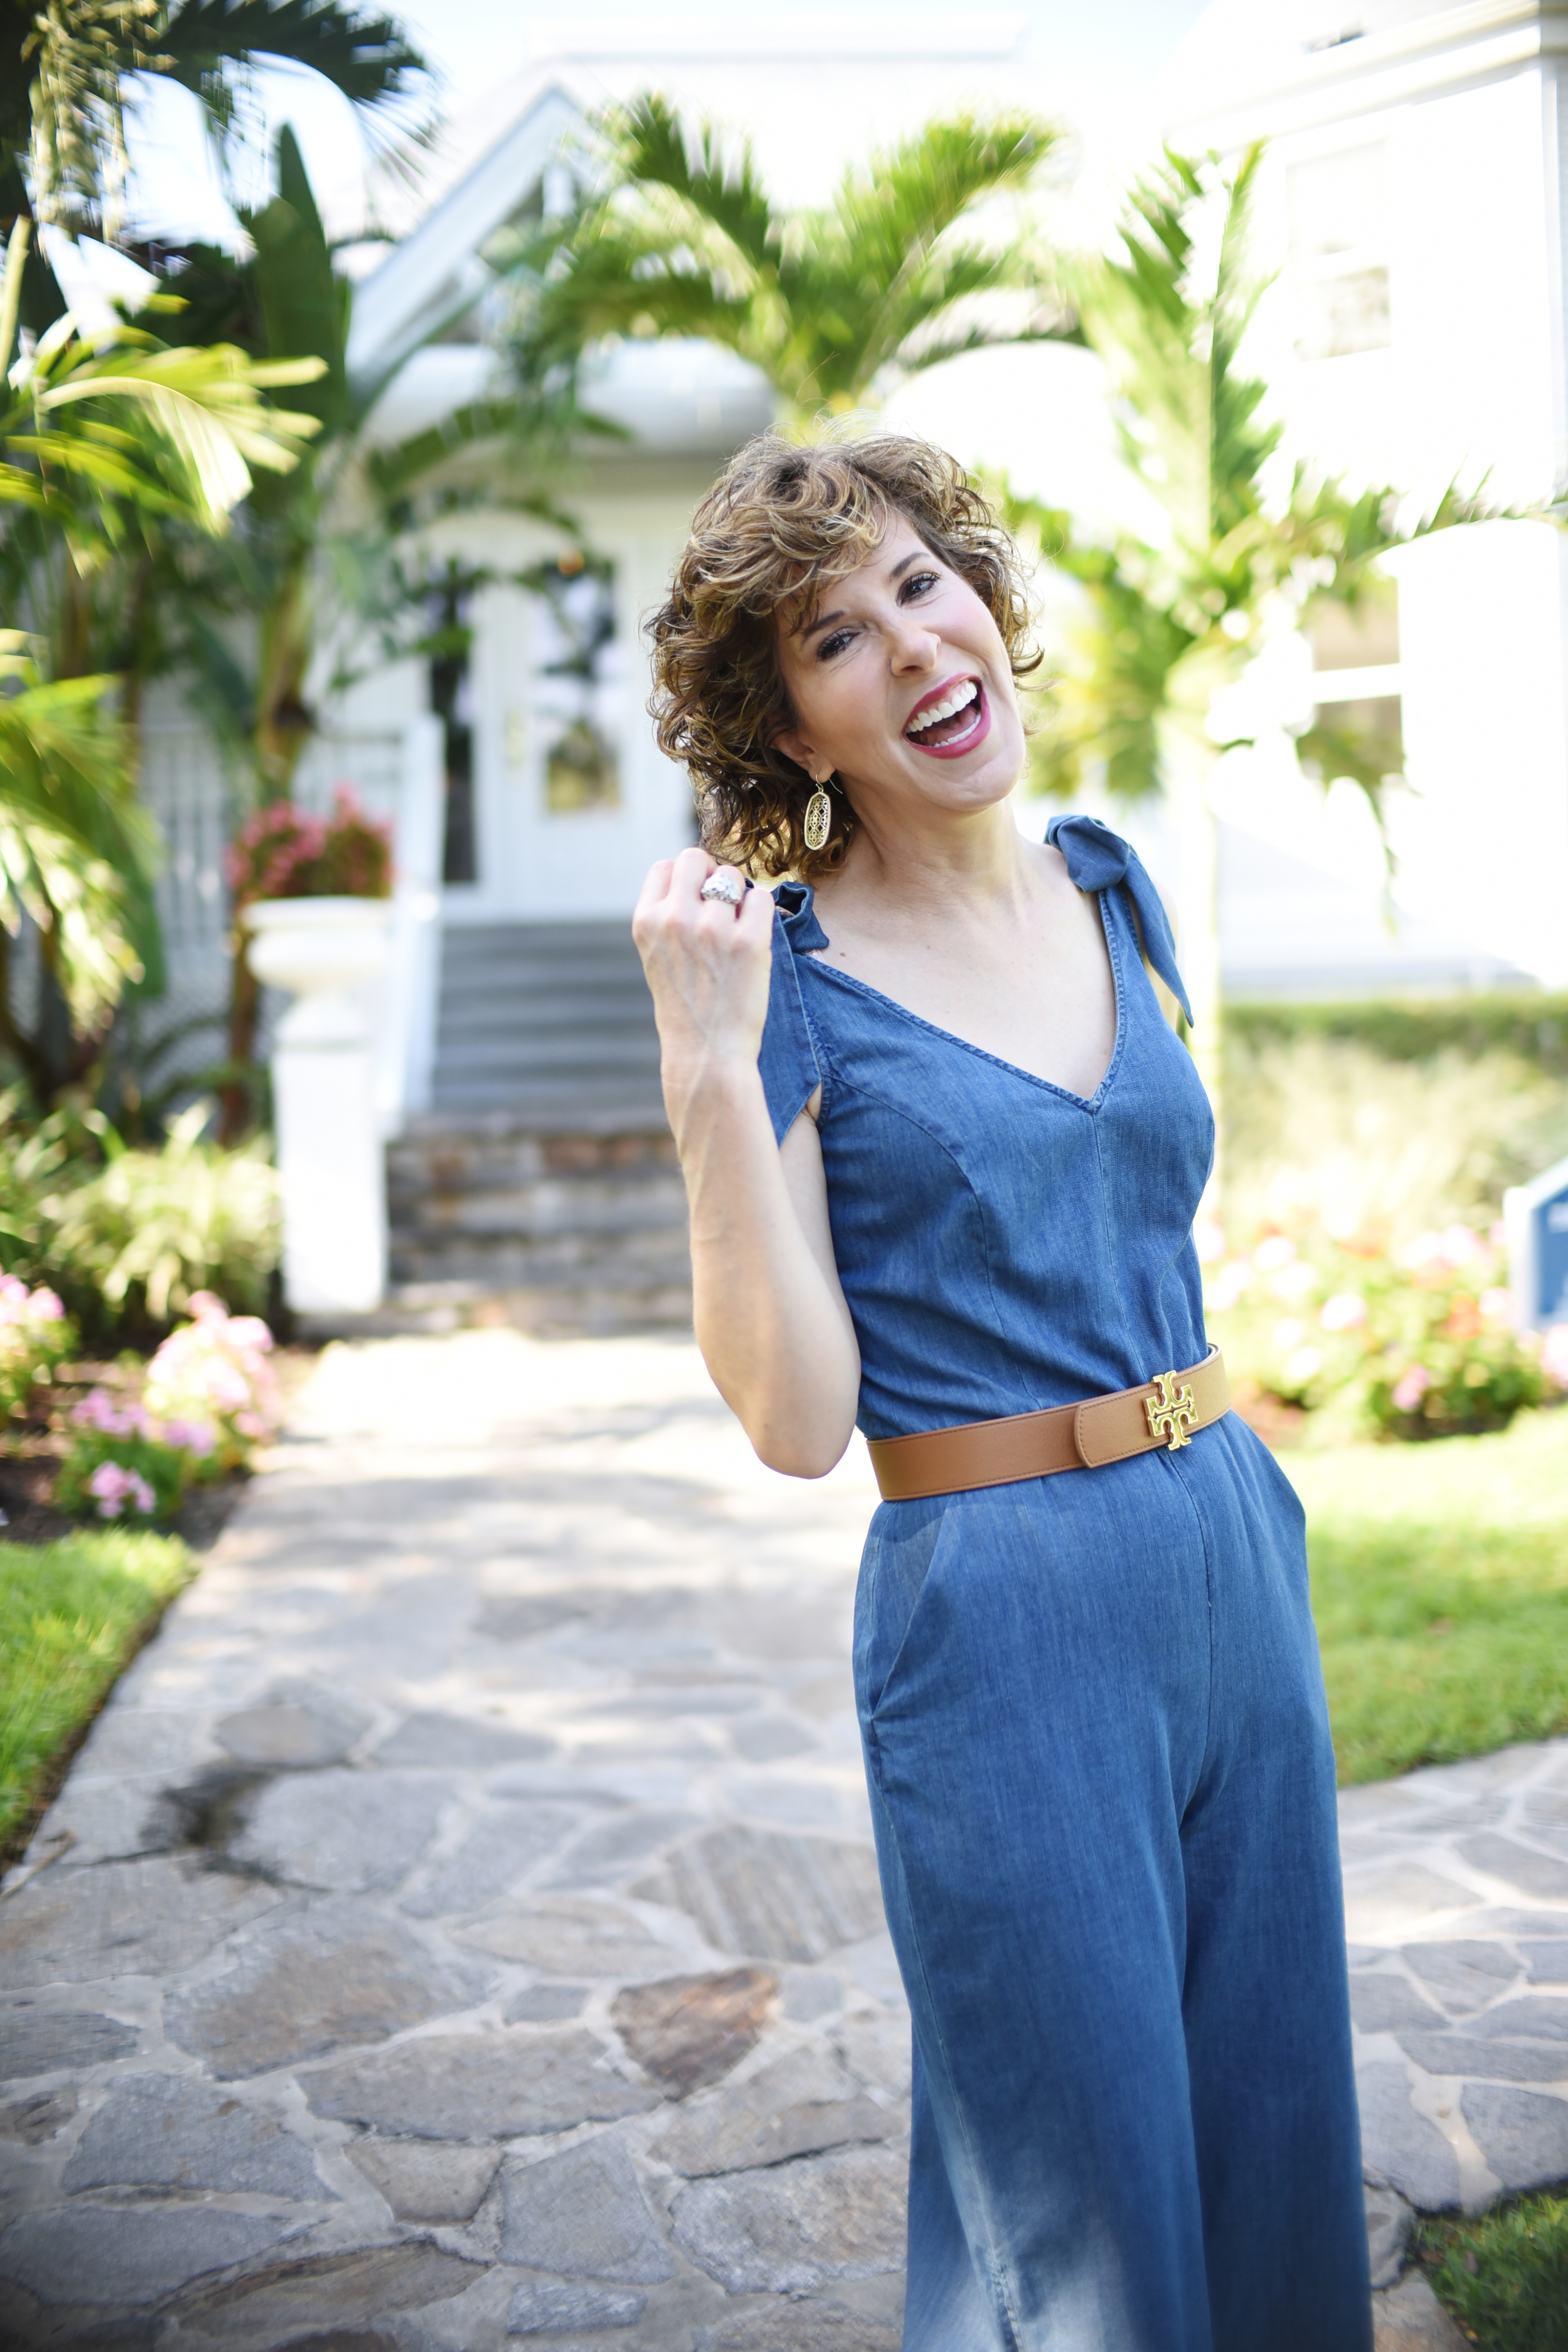 Jump on the Jumpsuit Trend | How to Wear it With Style & Grace